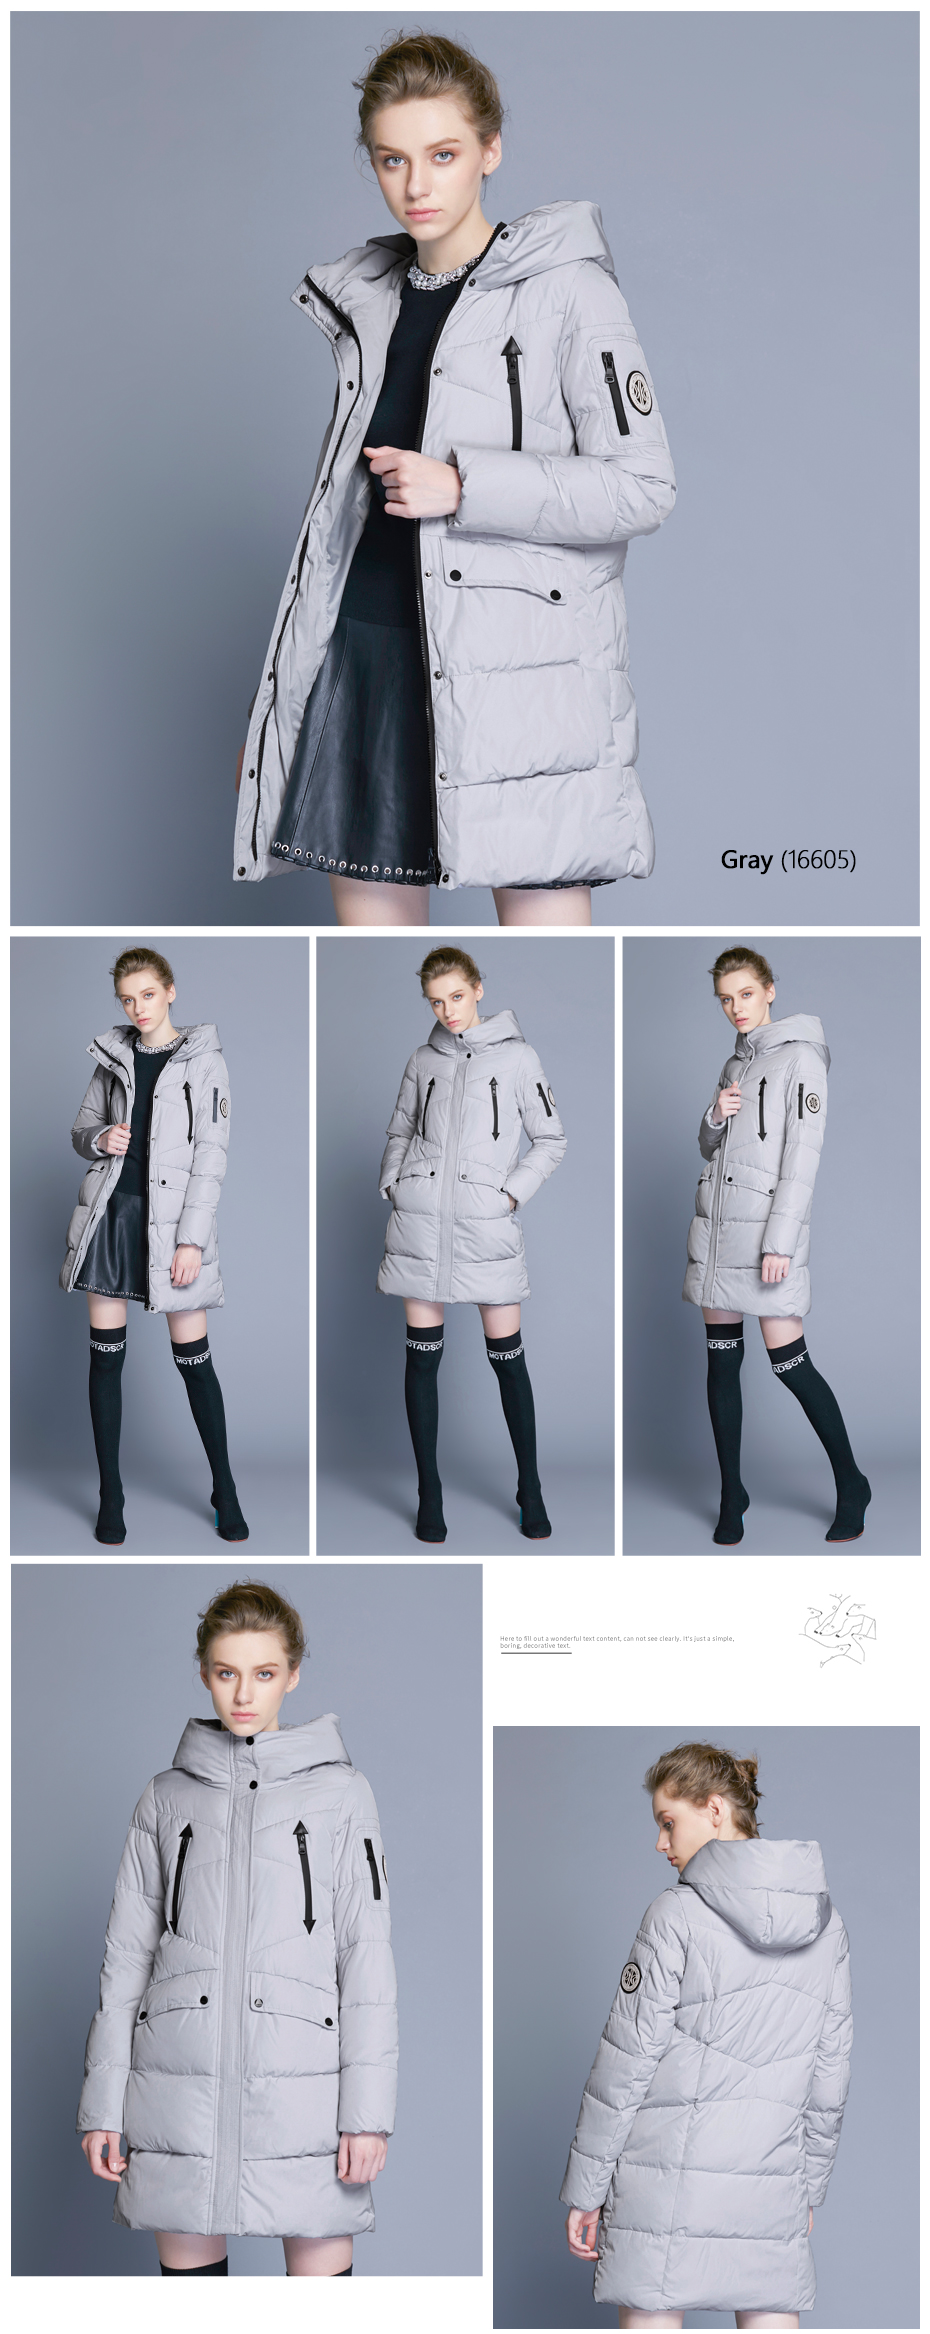 ICEbear 19 New Women Winter Jacket Coat Slim Winter Quilted Coat Long Style Hood Slim Parkas Thicken Outerwear B16G6155D 11